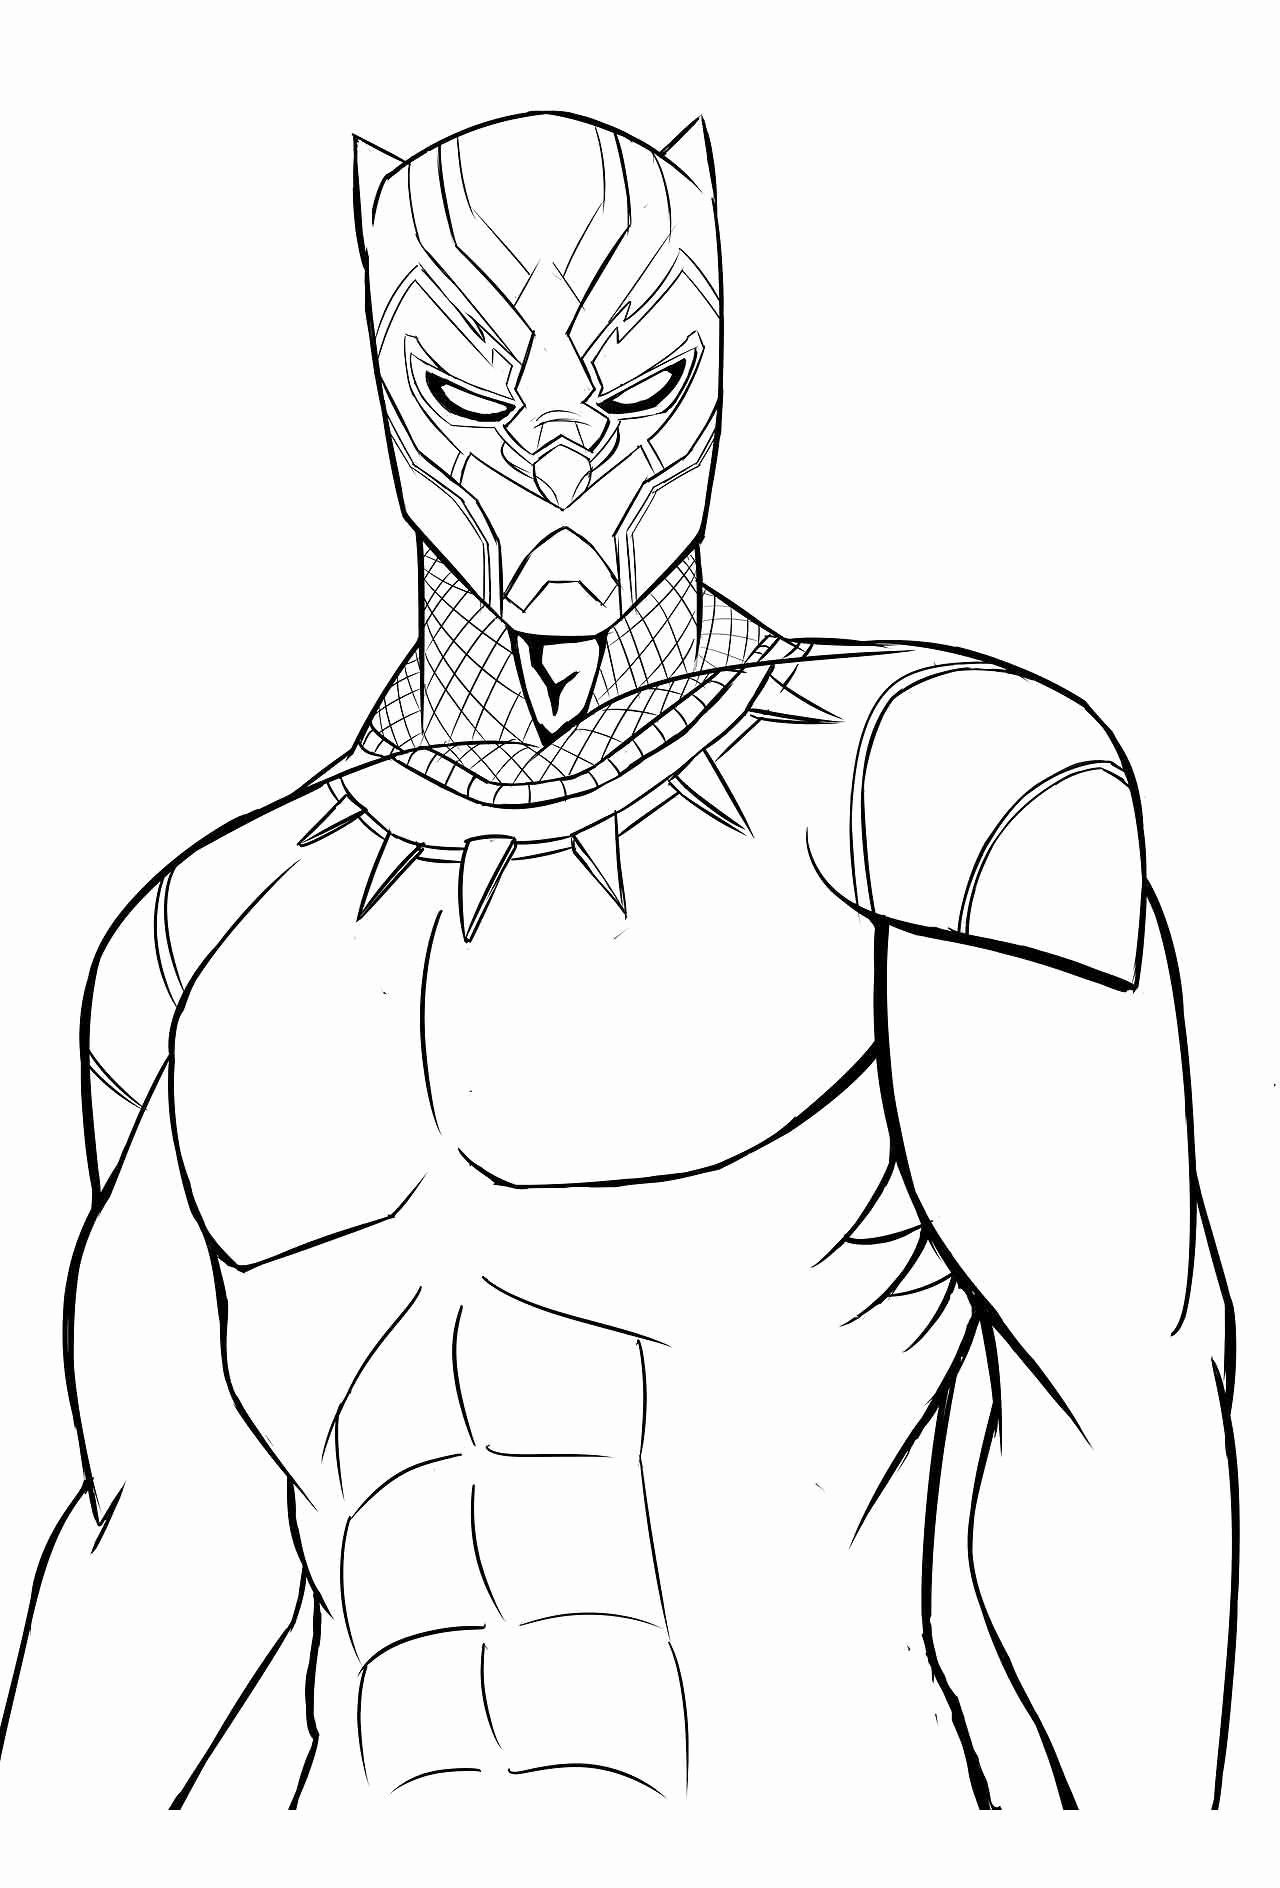 Avengers Black Panther Coloring Pages For Kids In 2020 Avengers Coloring Pages Superhero Coloring Pages Avengers Coloring